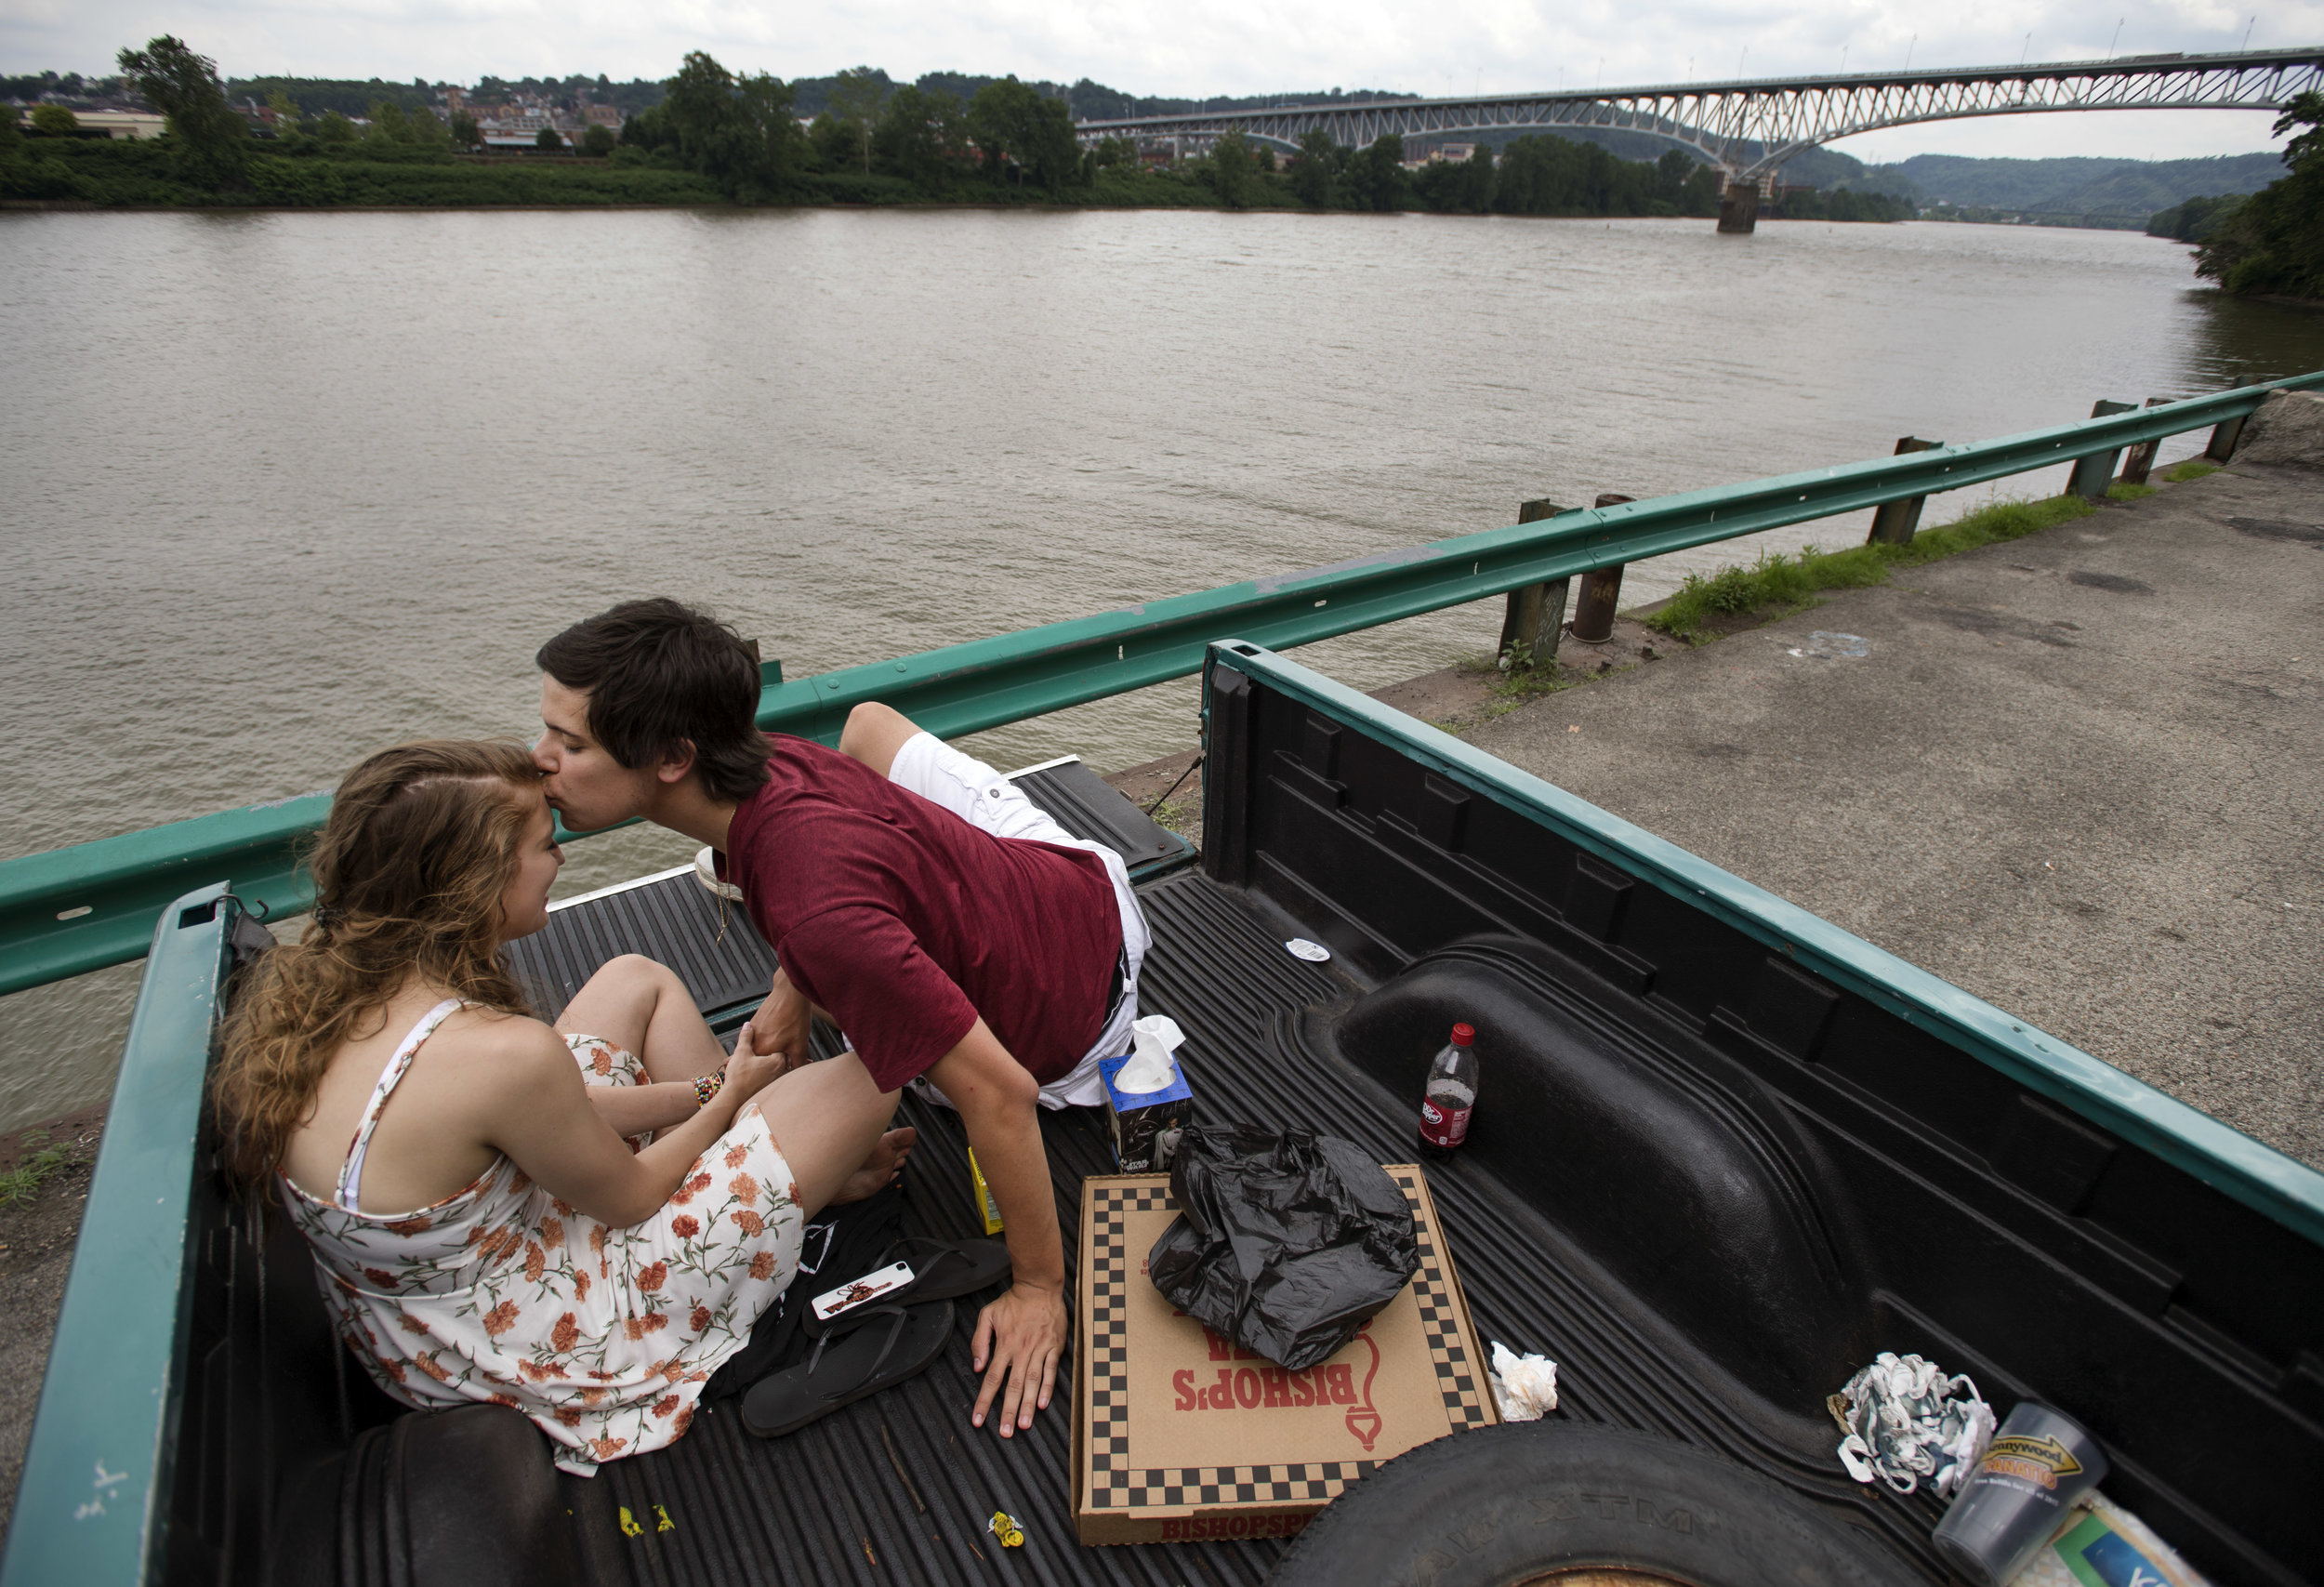 """Steel Valley High School sweethearts Angelica Good and Evan Lasek, both 18 of Munhall, enjoy pizza, lemonade and each other's company while picnicking on Thursday, June 22, 2017 along the Monongahela River near Duck Hollow Trail. The couple has been dating for two years and leaves for separate colleges on Saturday to begin summer classes. """"It'll be okay, babe,"""" said Lasek as he leaned in to kiss Good's forehead. Lasek will attend Penn State University for statistics and Good will attend Waynesburg University of forensic science. (Steph Chambers/Post-Gazette)"""